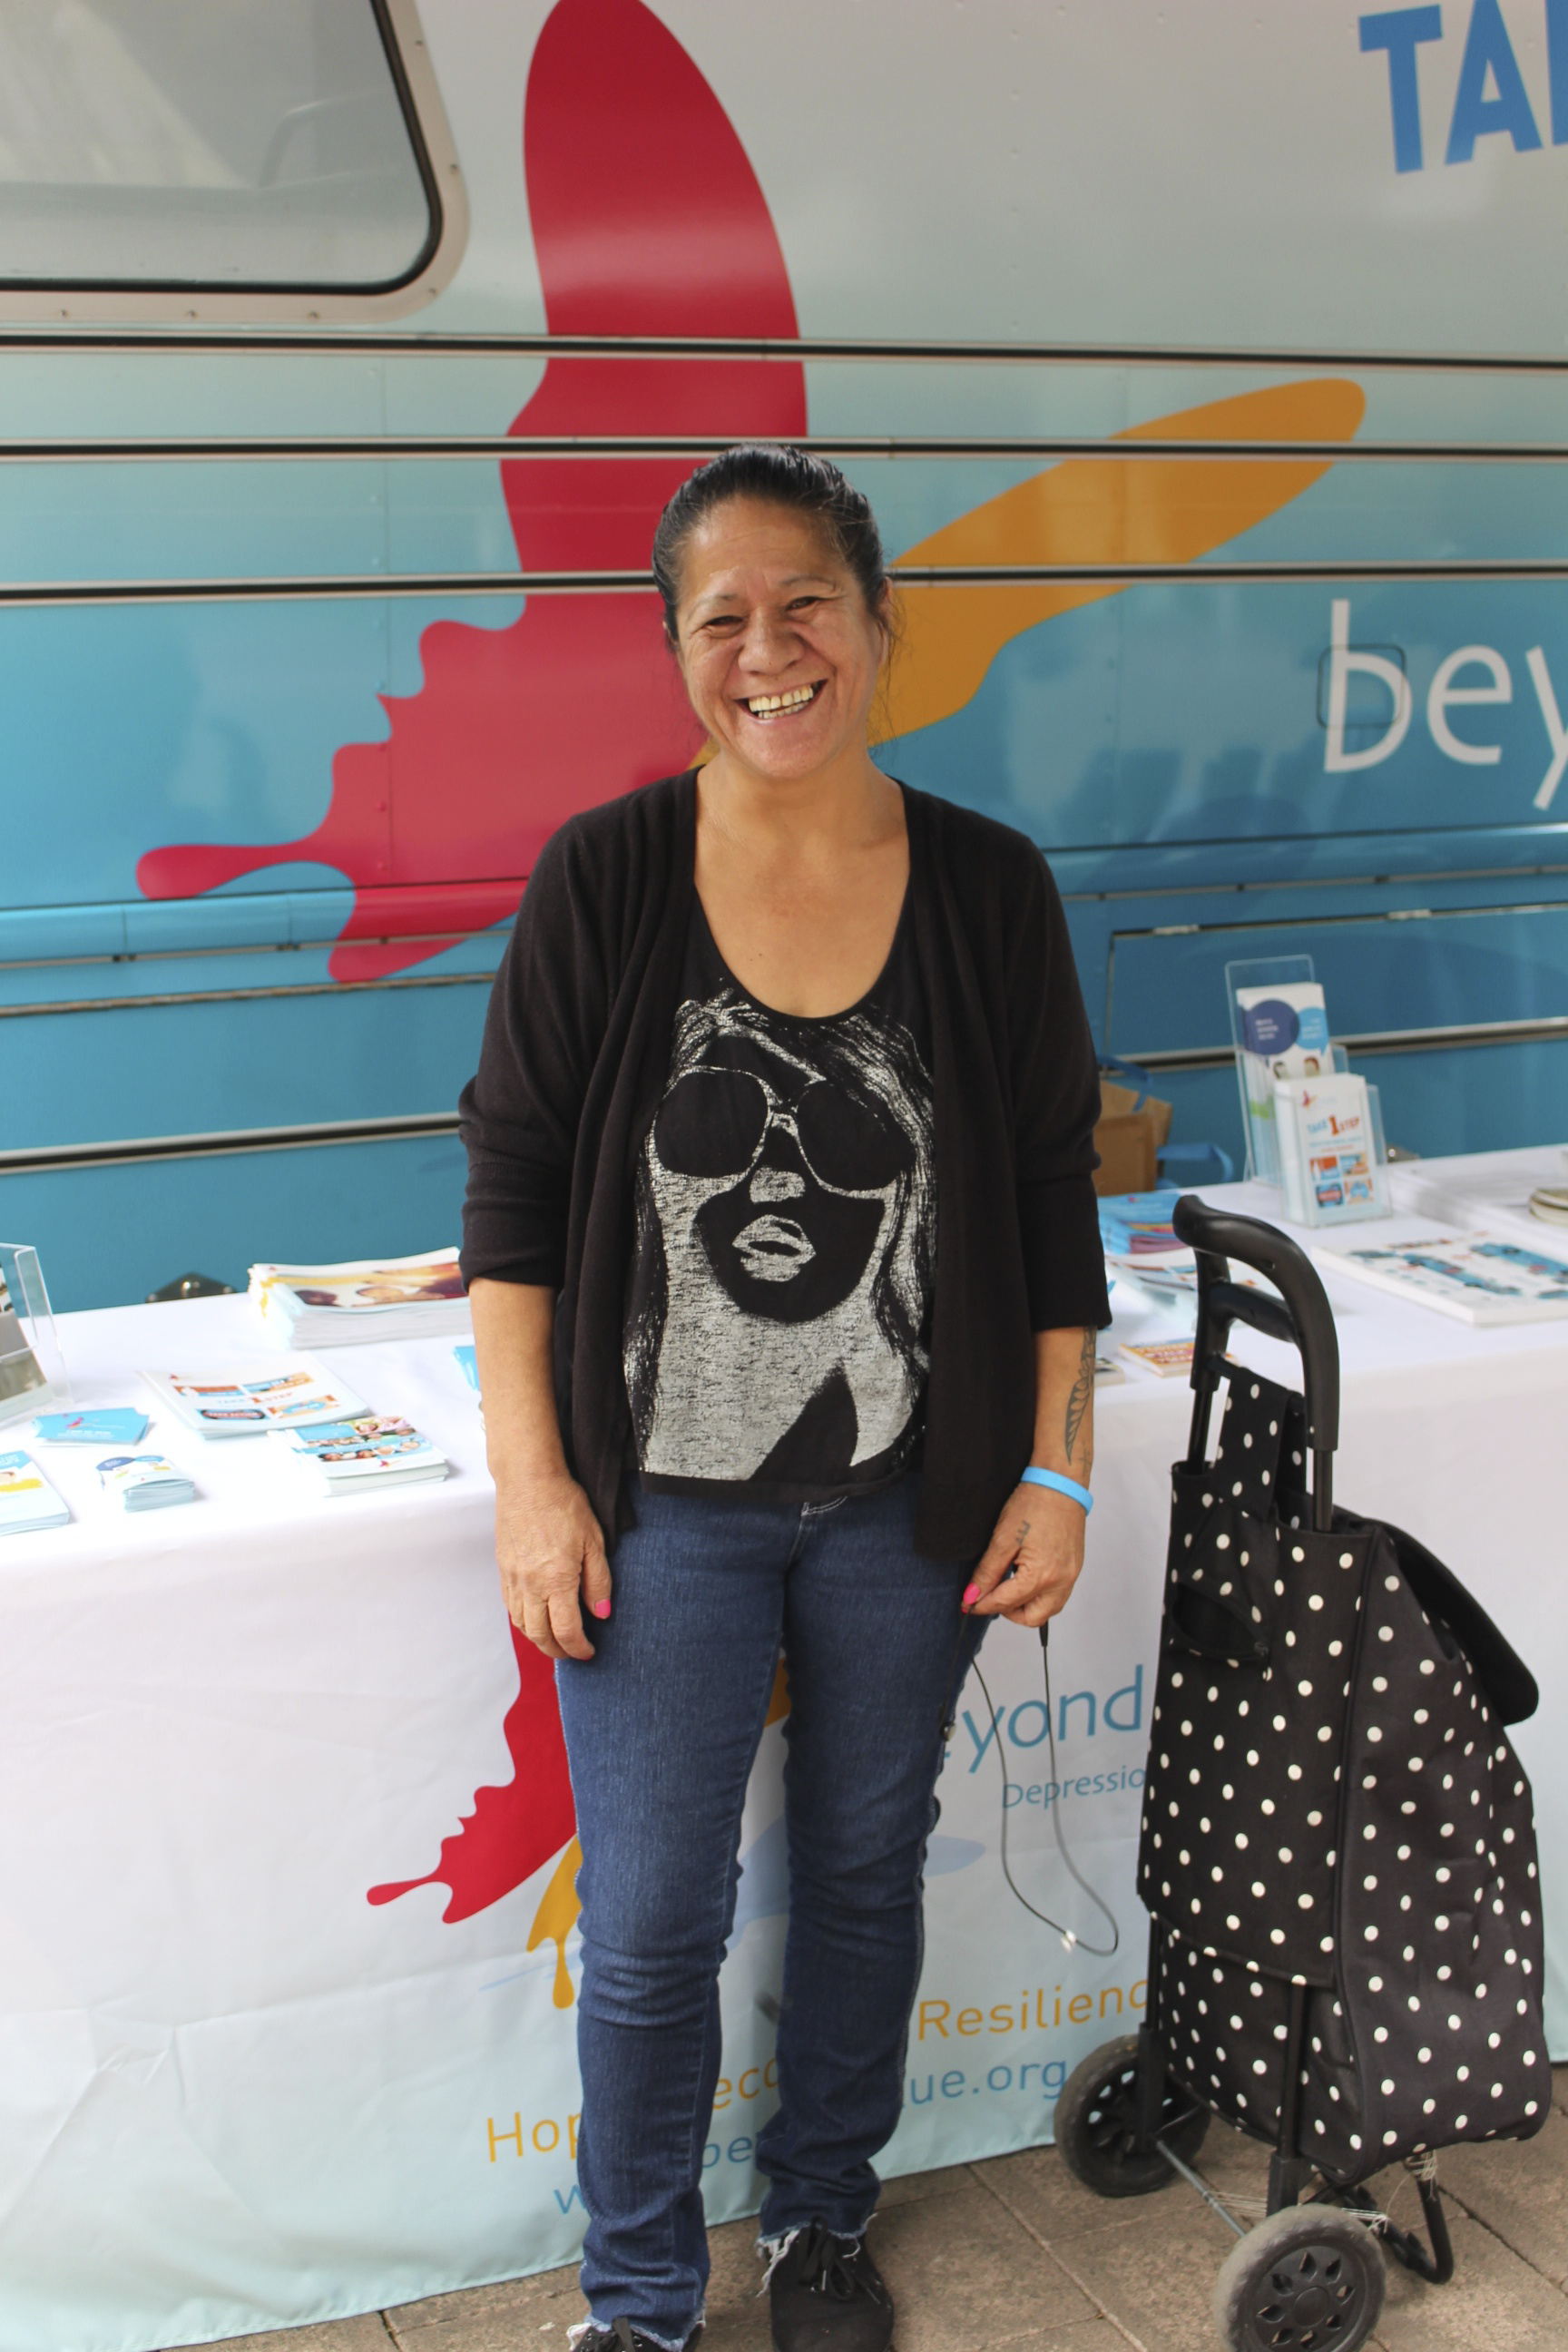 A lovely Beyond Blue supporter dropped by the bus at Canberra Centre